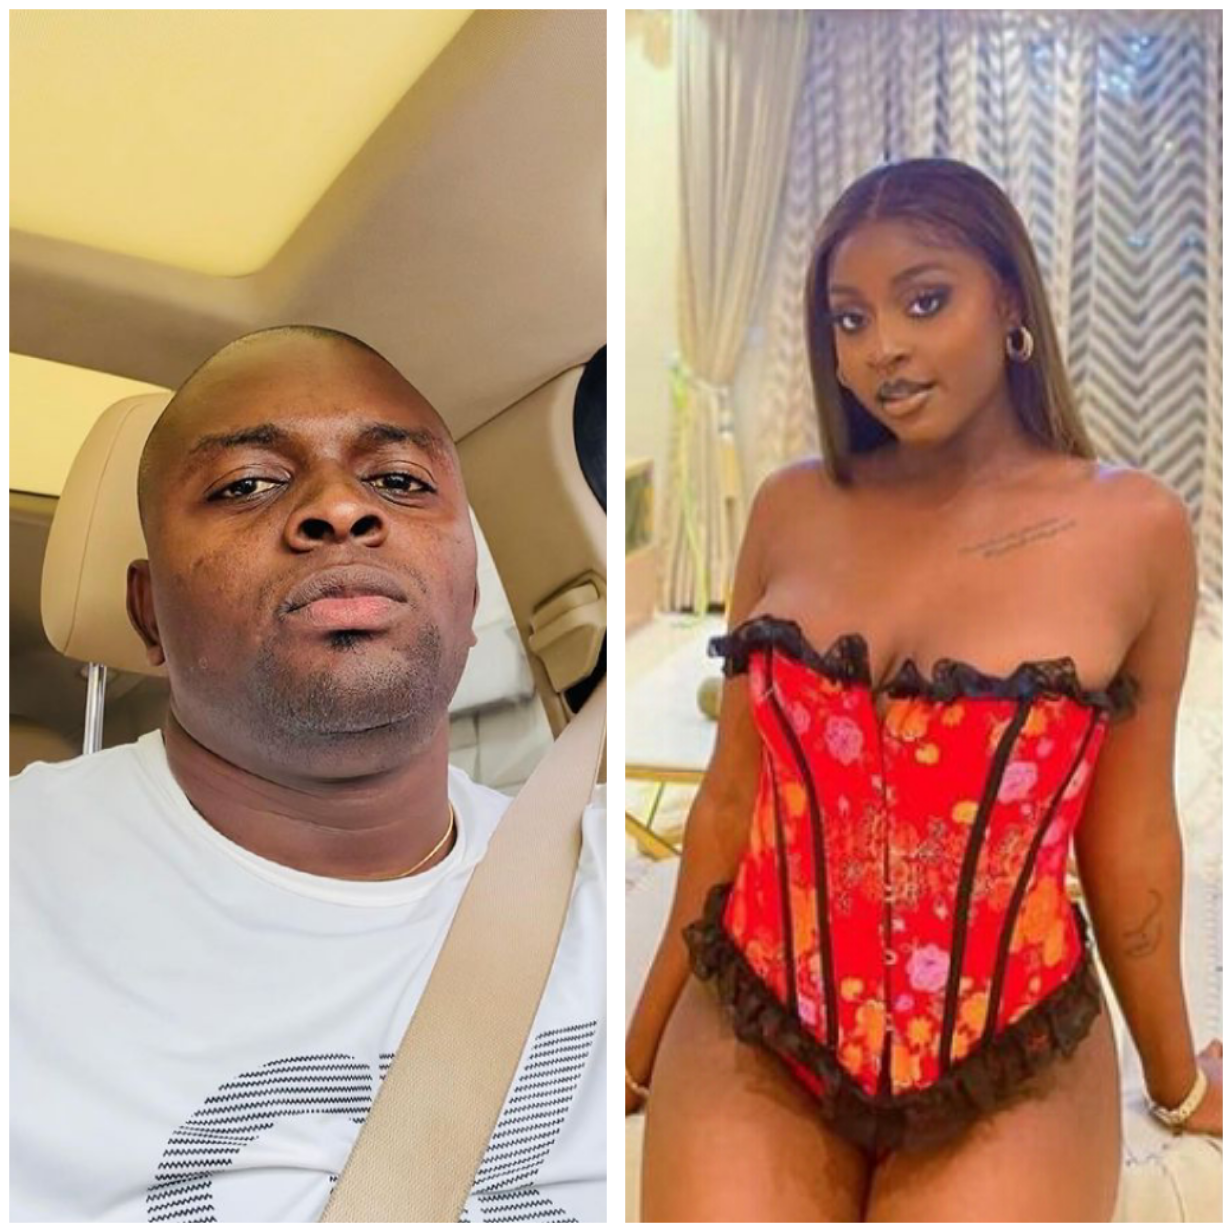 Update: Landlord who gave tenant a quit notice drags her, claims she parades around naked, beat up his security guard, snatched another woman